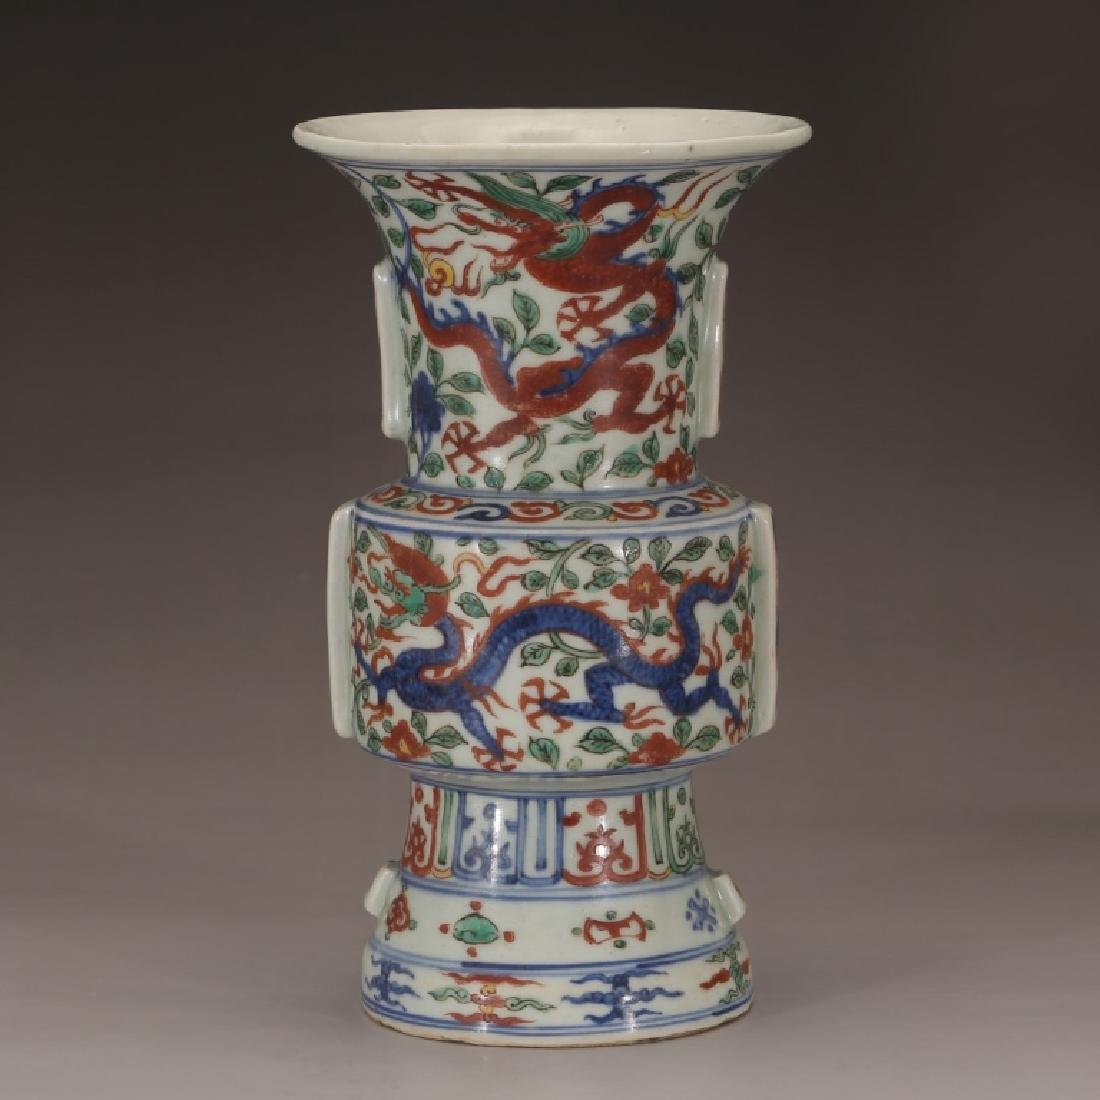 Chinese Qing Dynasty Archaic Wucai Porcelain Vase